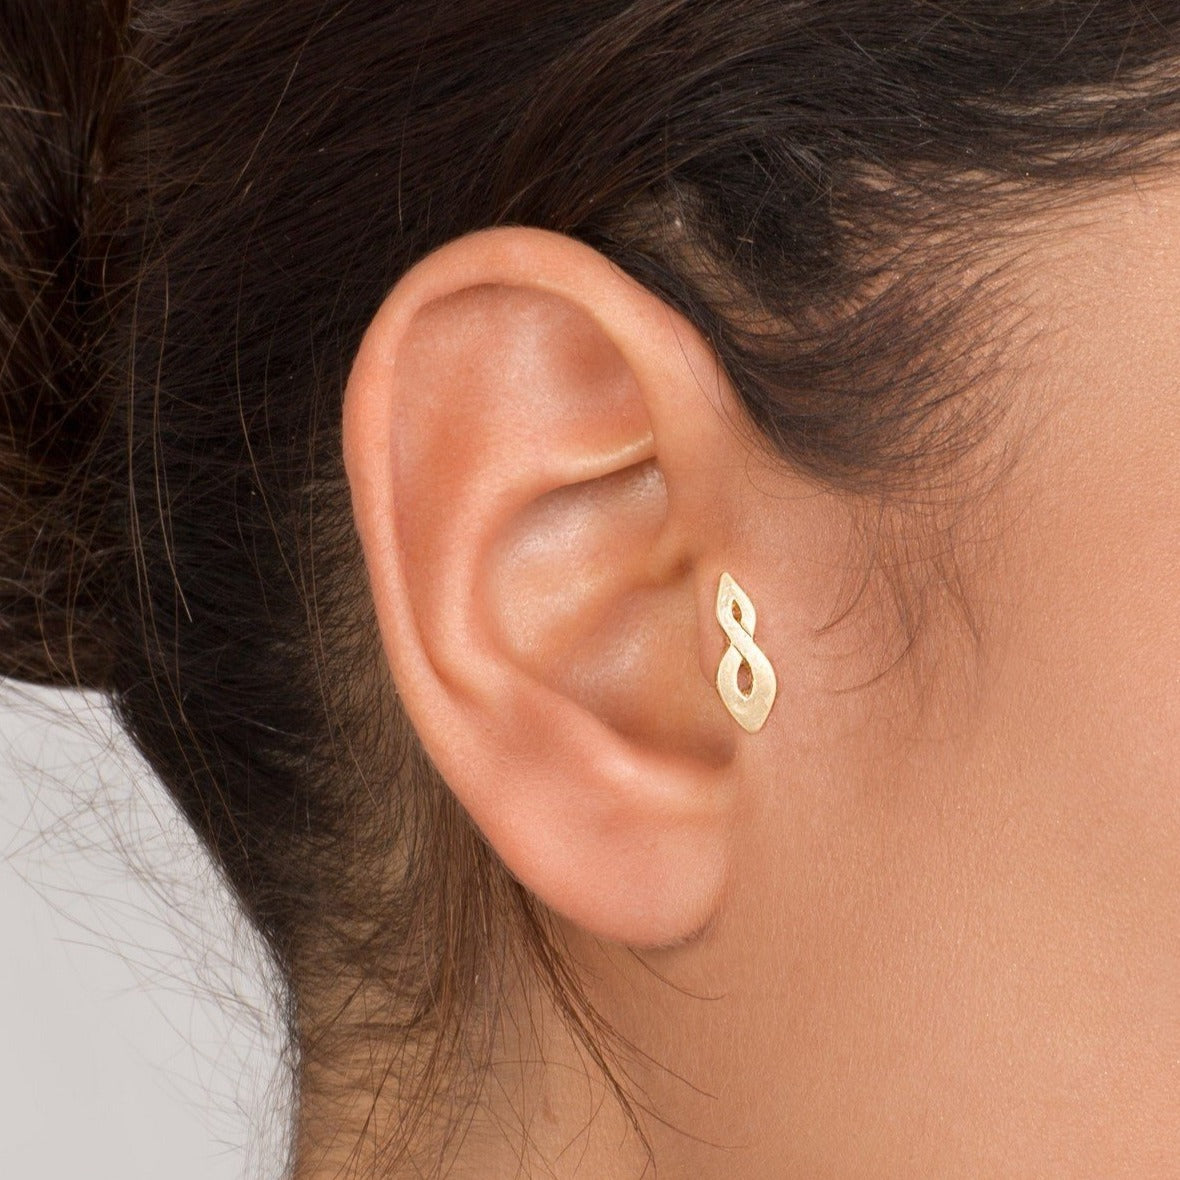 14k Gold Celtic Flame Tragus Eearring Shirli S Jewelry